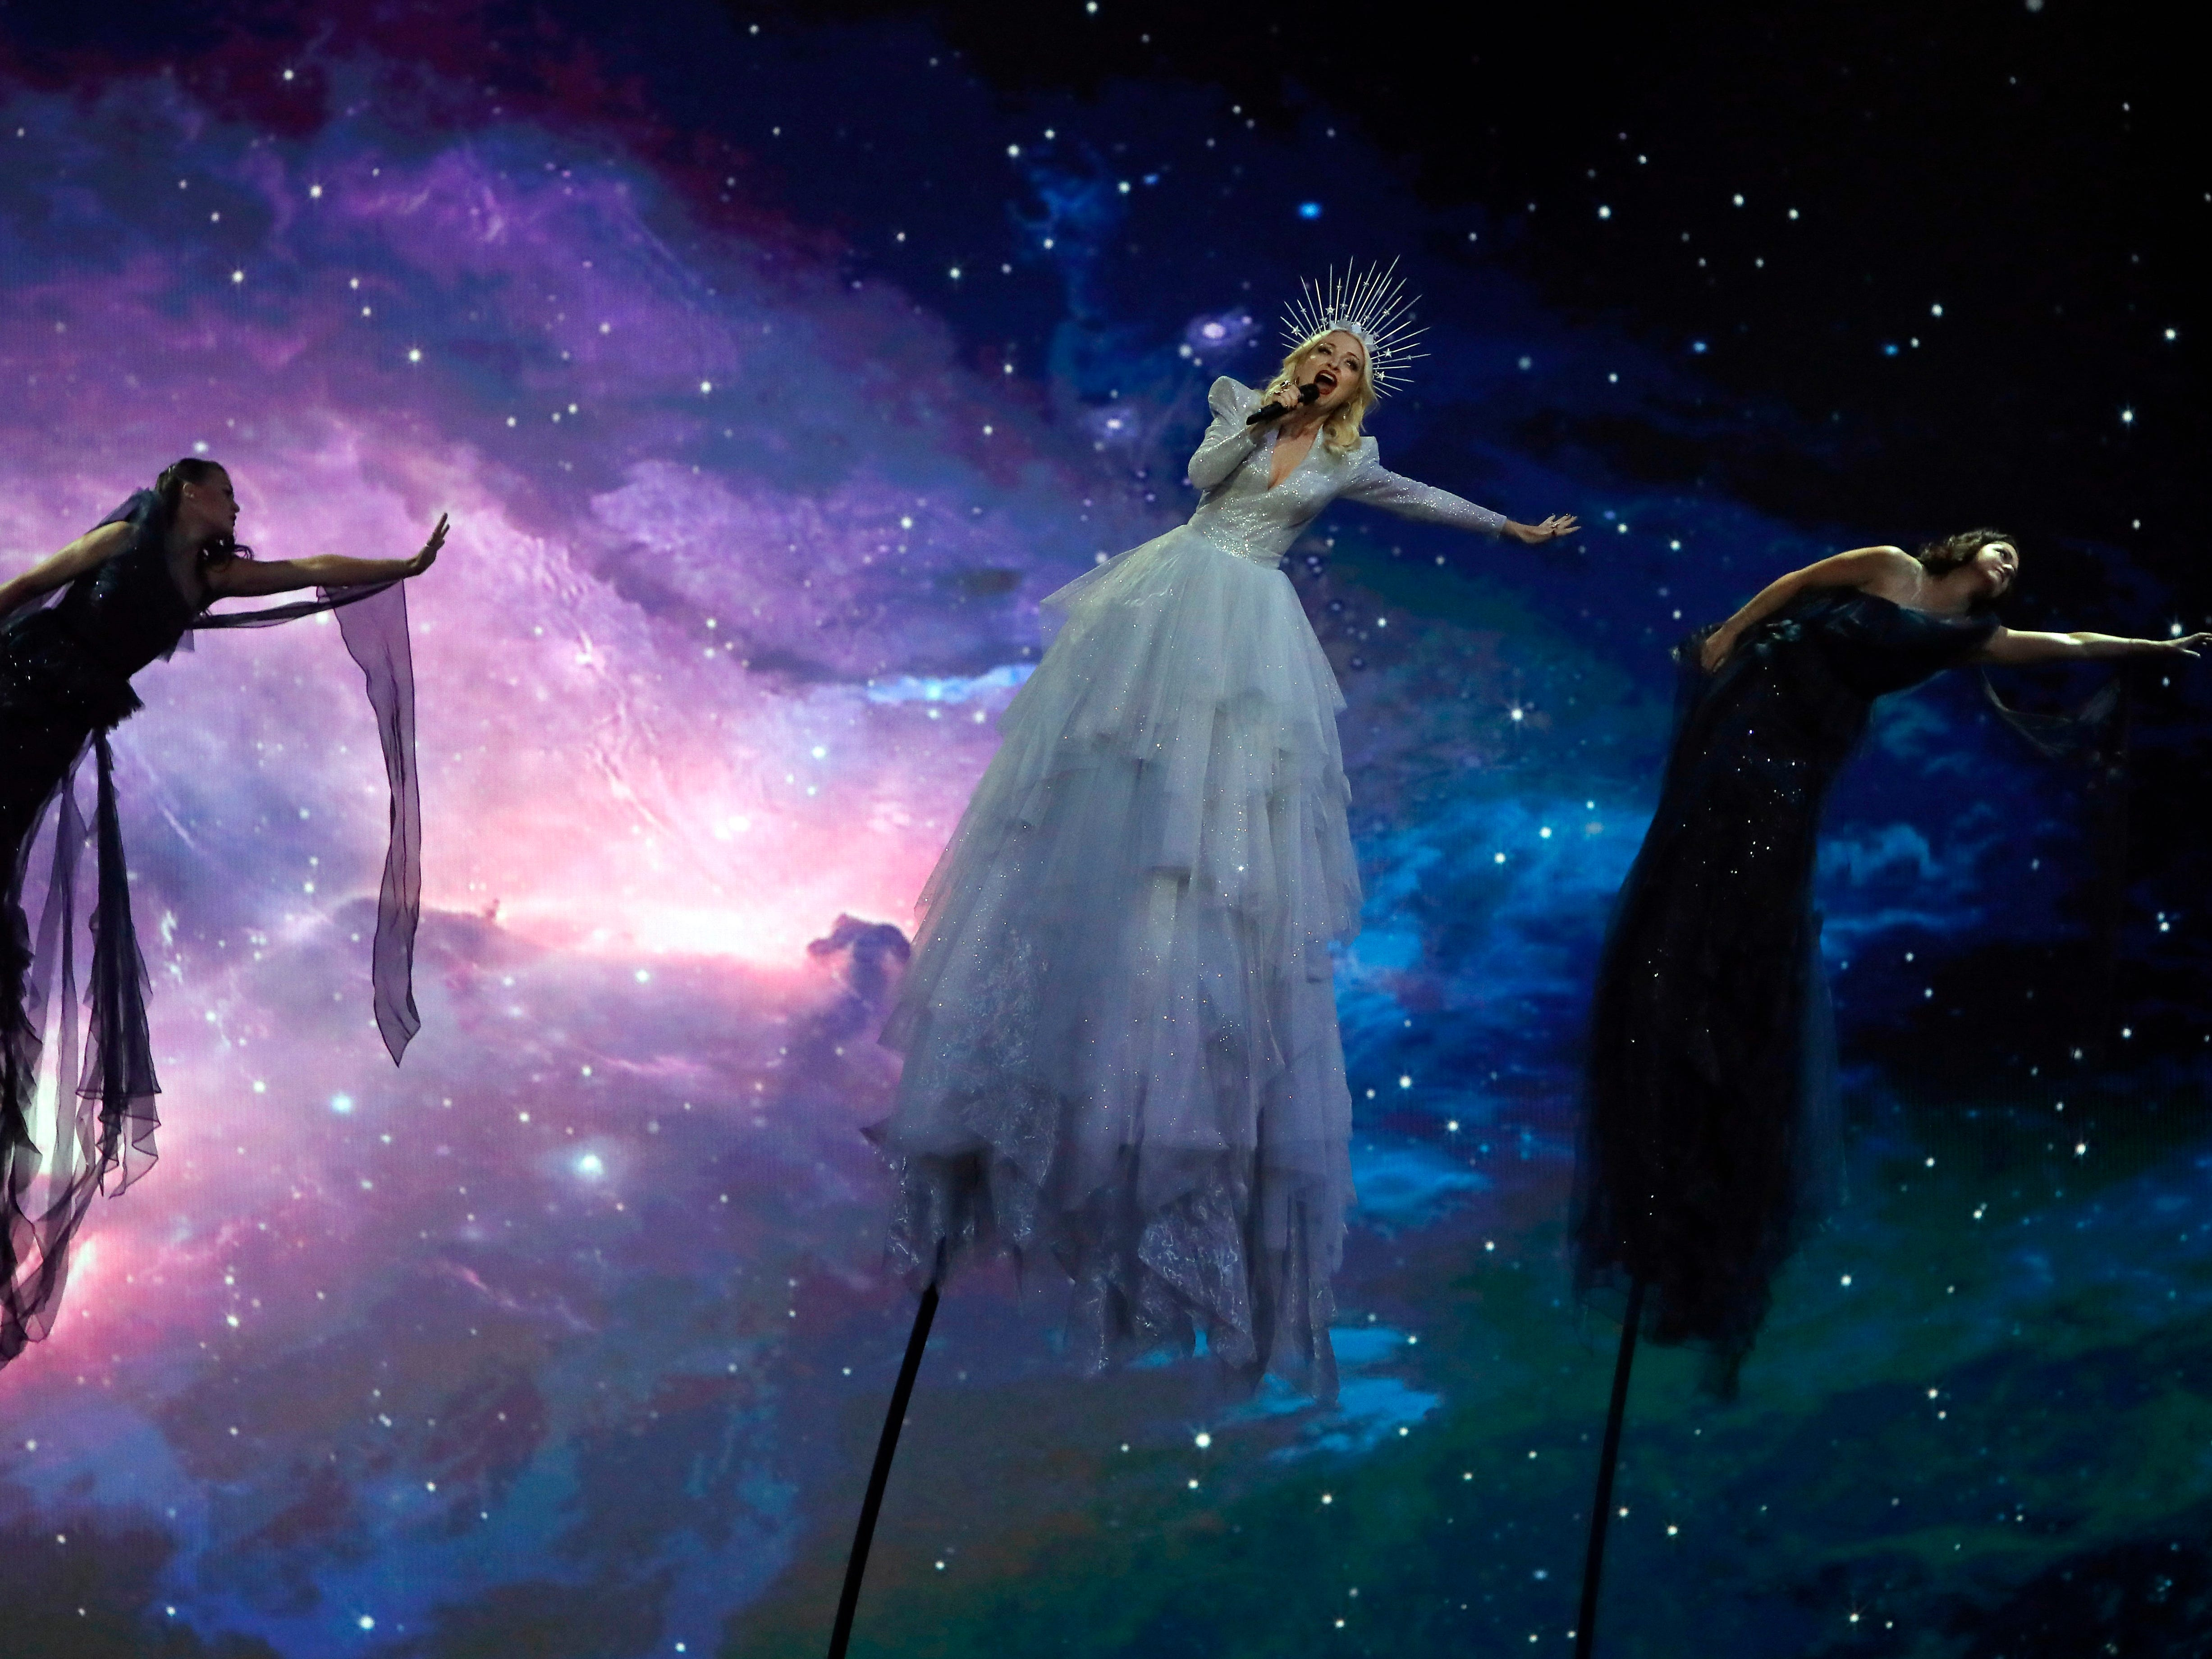 """Kate Miller-Heidke of Australia, center, performs the song """"Zero Gravity"""" during the 2019 Eurovision Song Contest grand final in Tel Aviv, Israel, Saturday, May 18, 2019."""